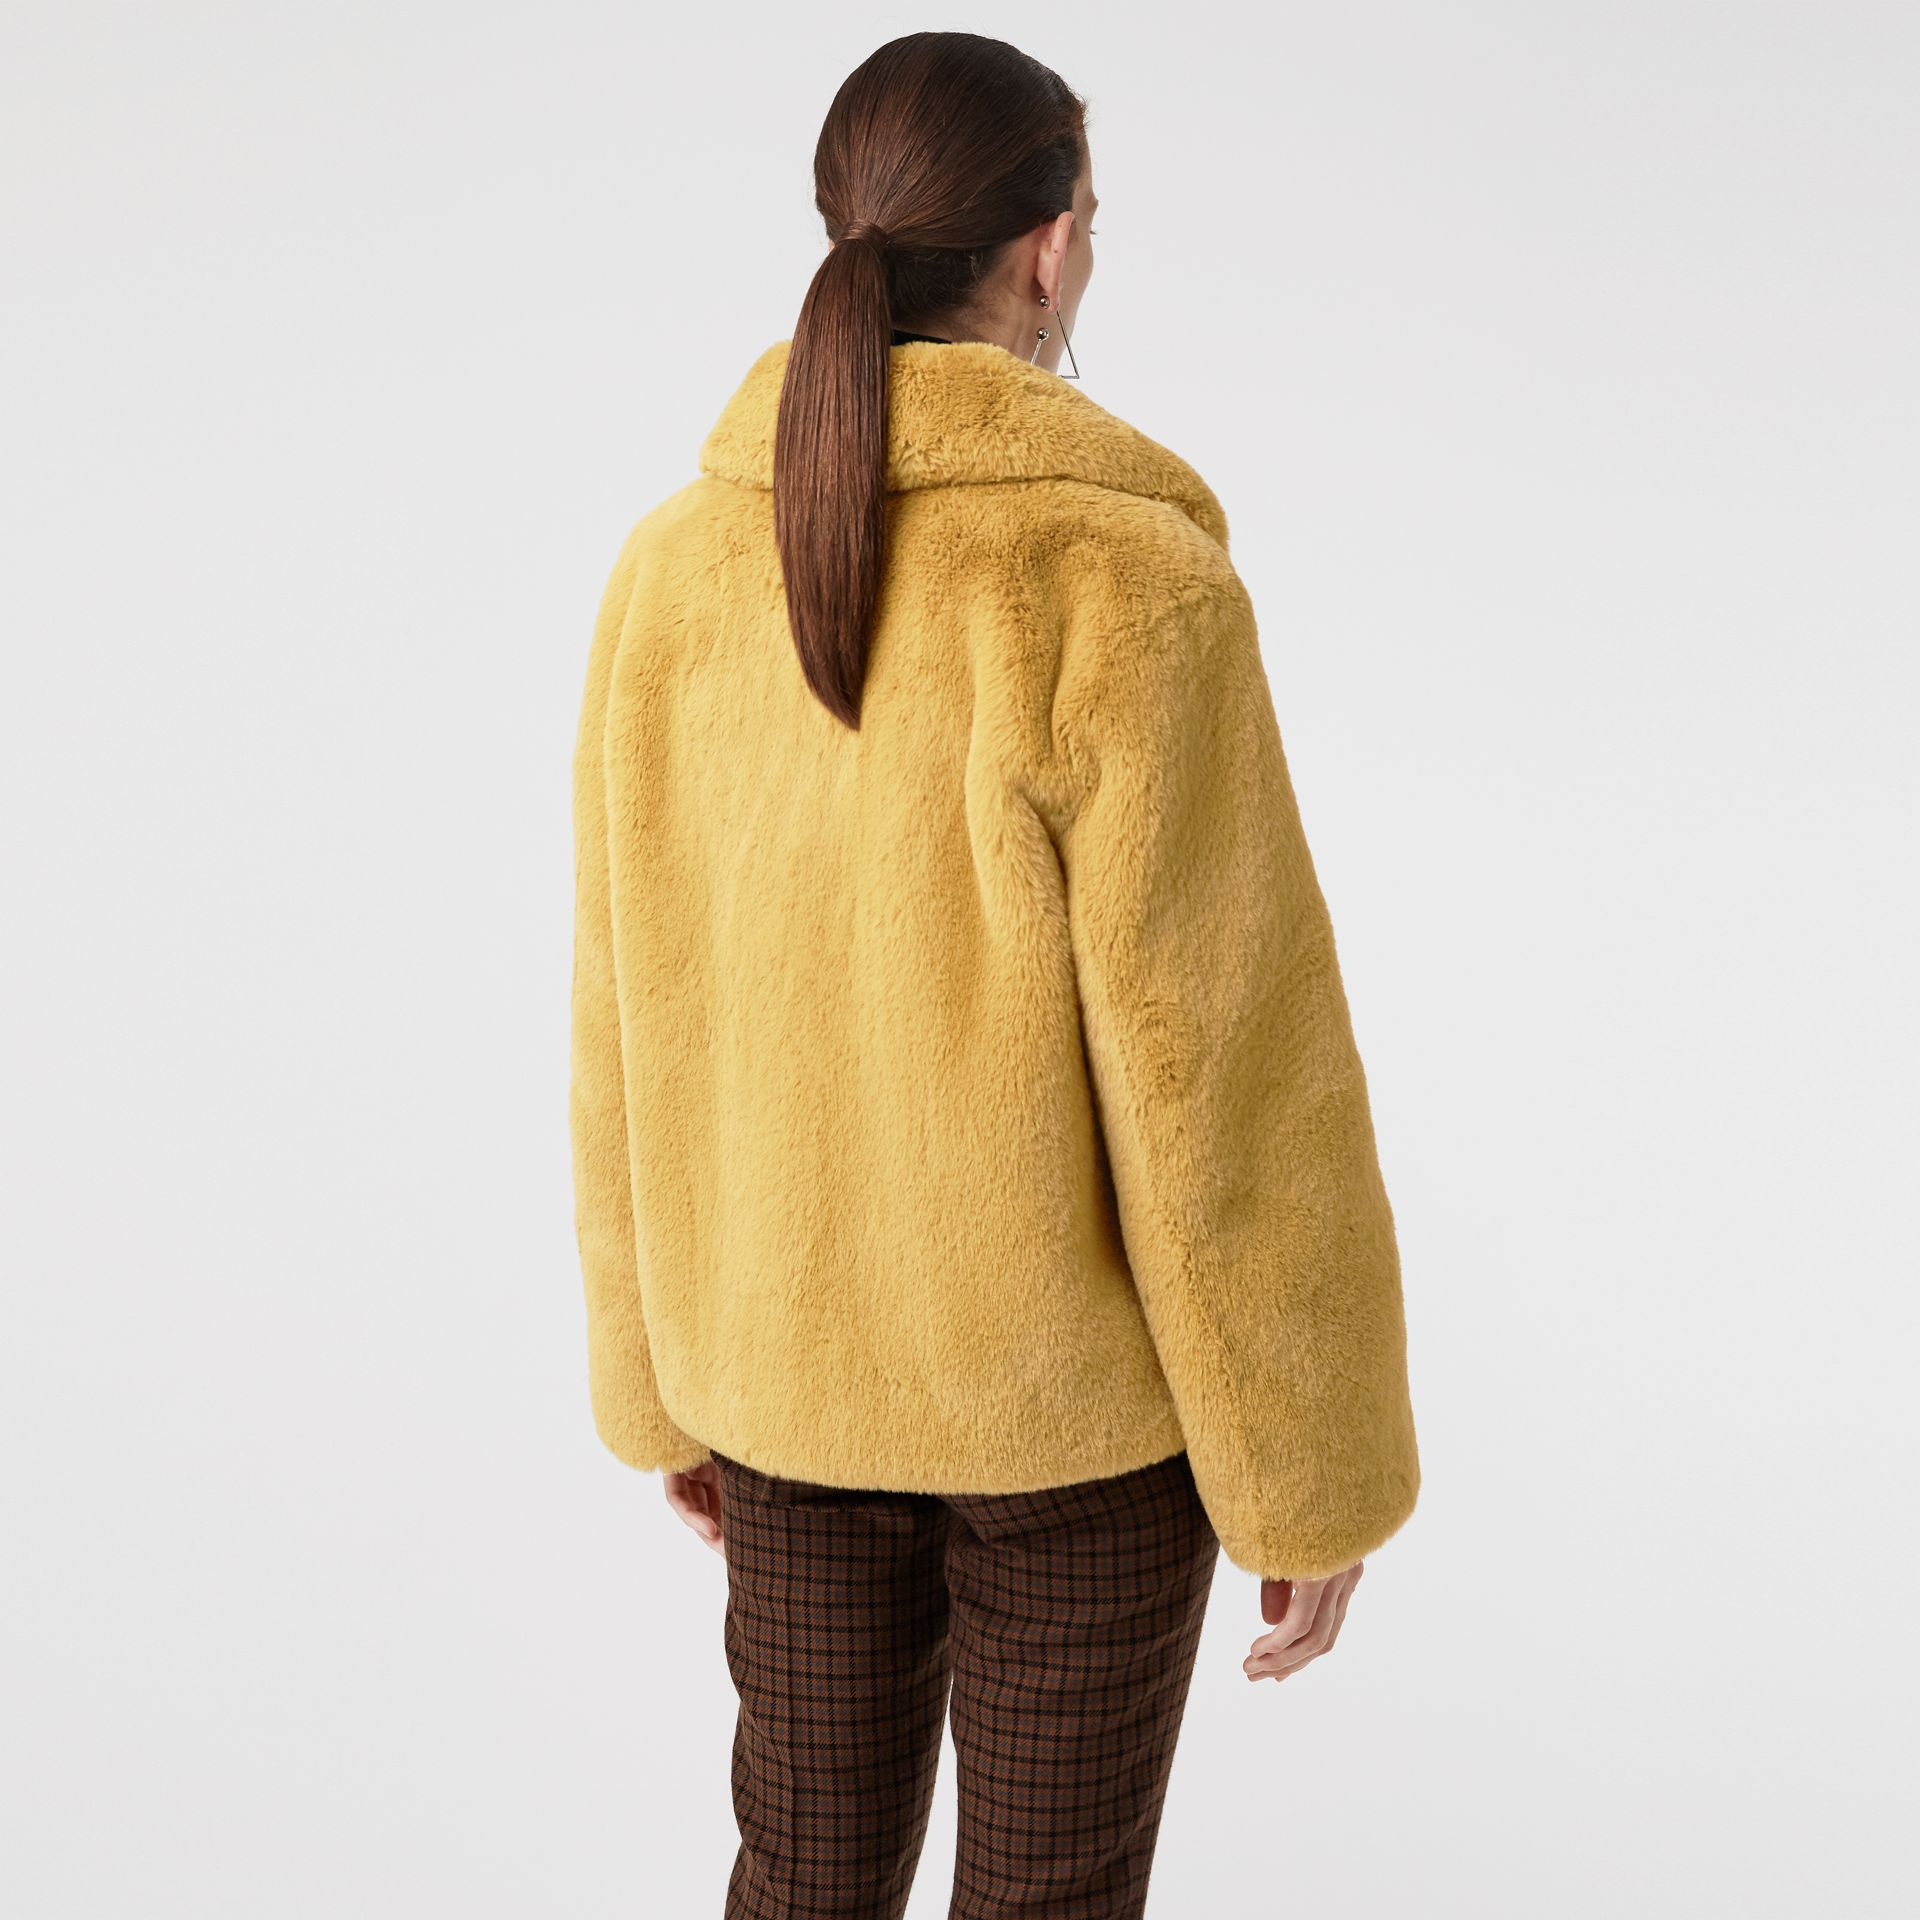 Faux Fur Single-Breasted Jacket in Ochre Yellow - Women | Burberry Australia - gallery image 2